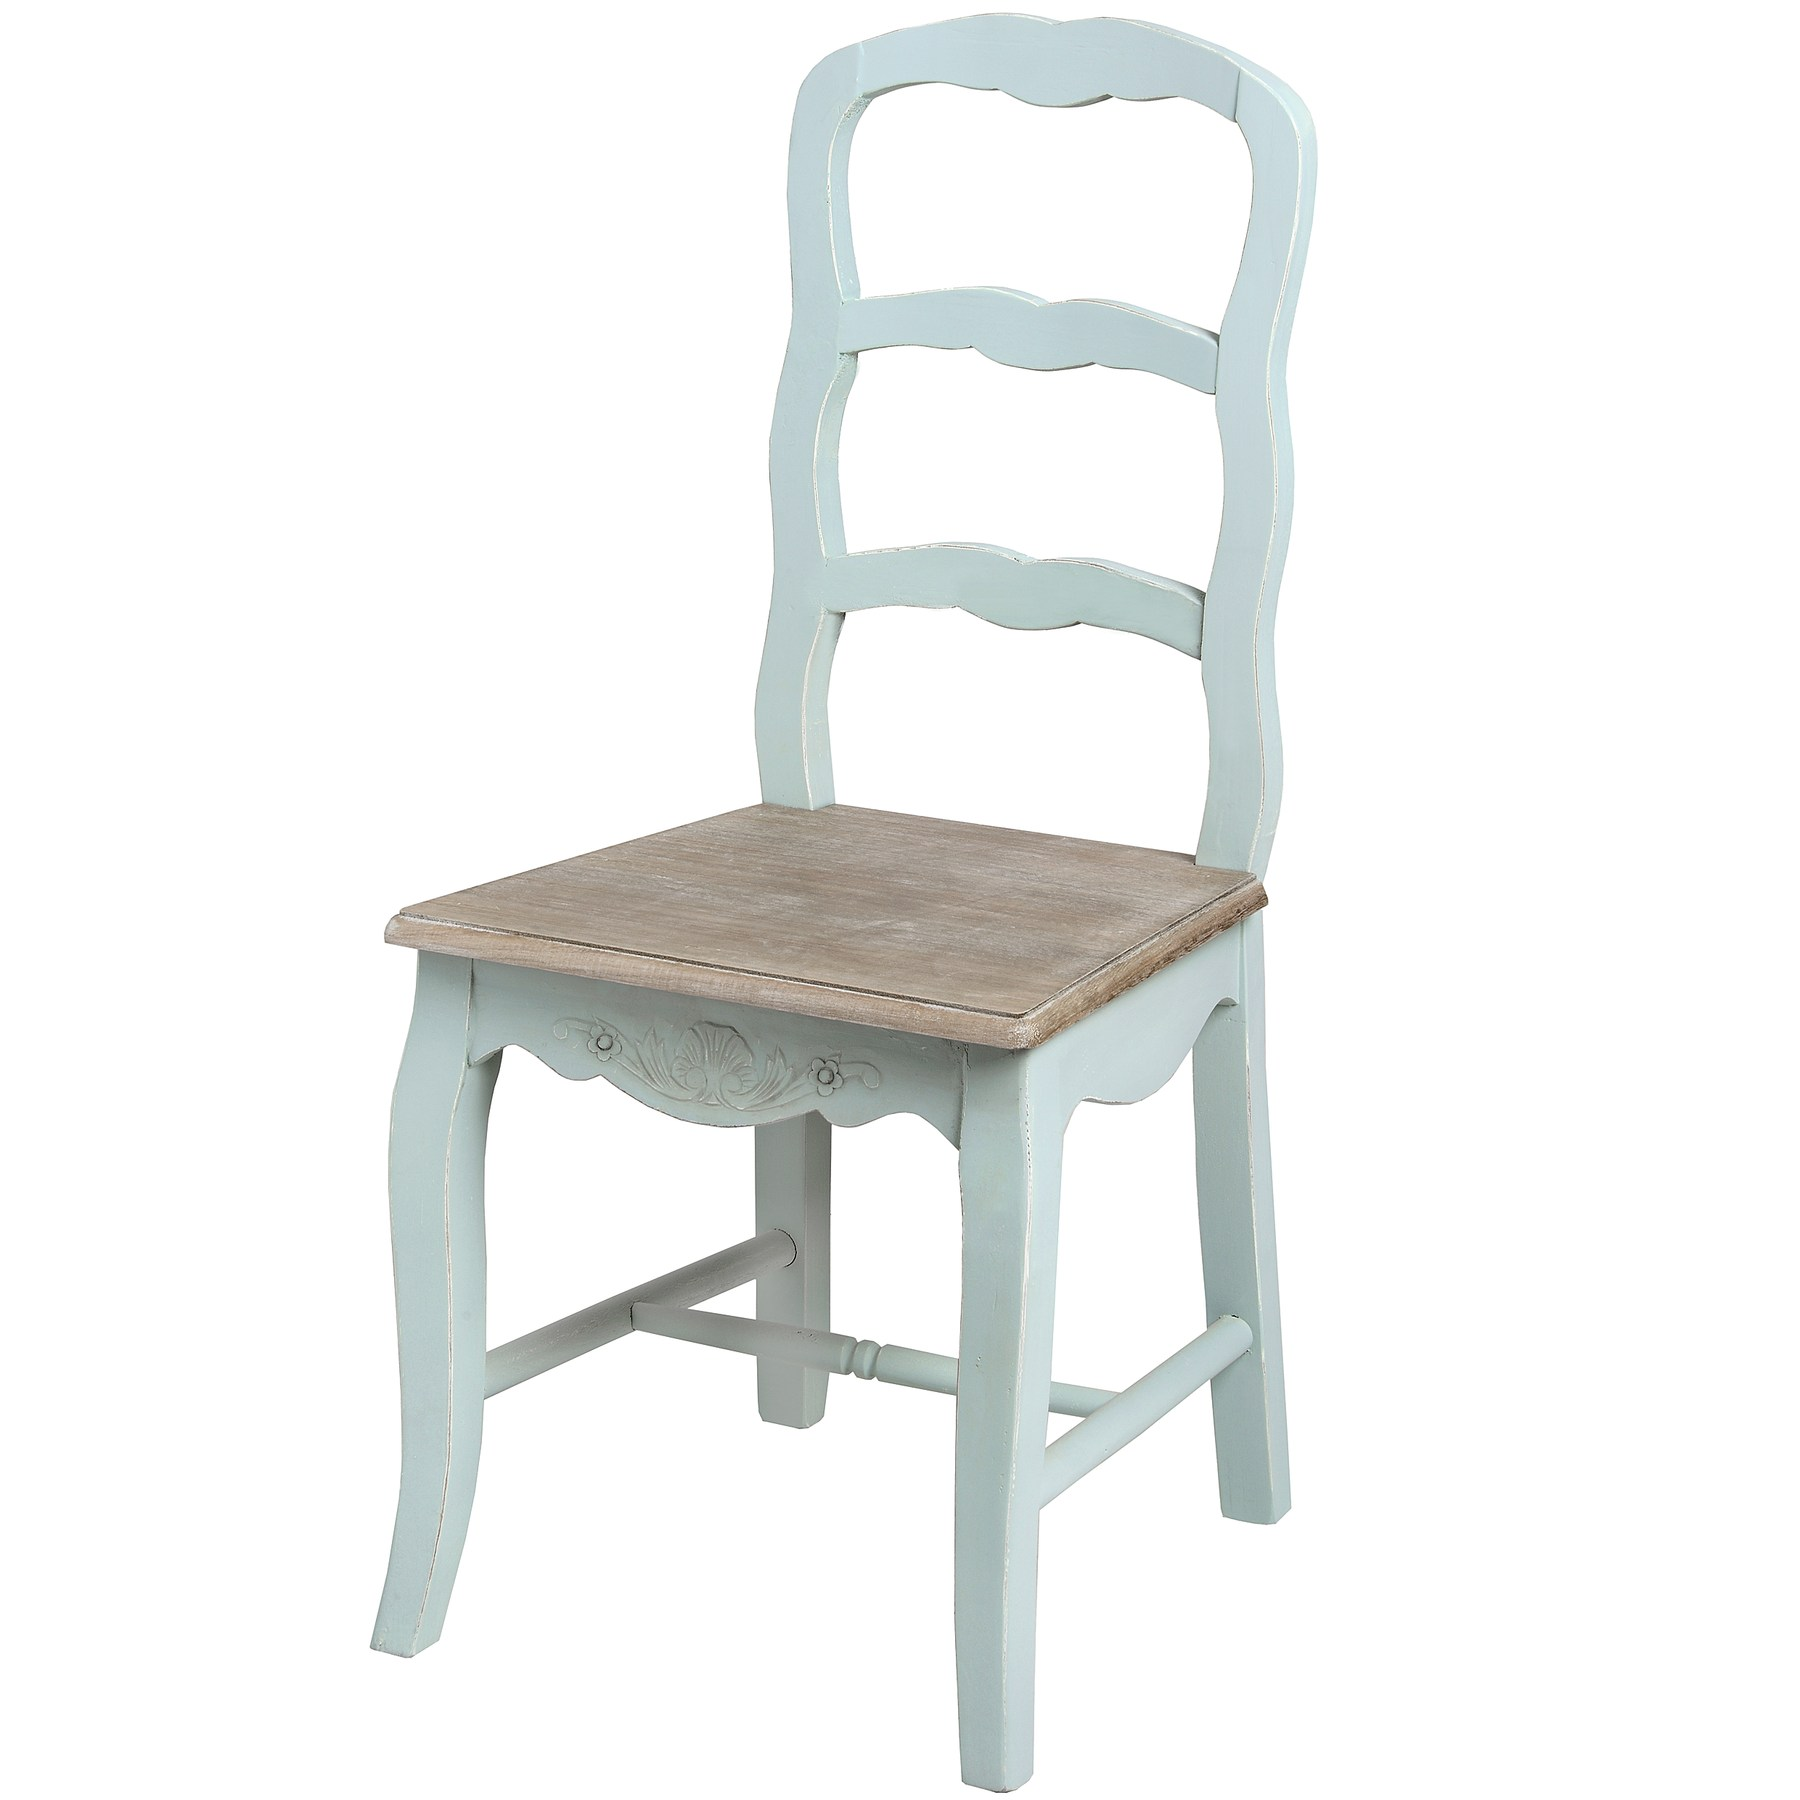 Genevieve Range - Dining Chair